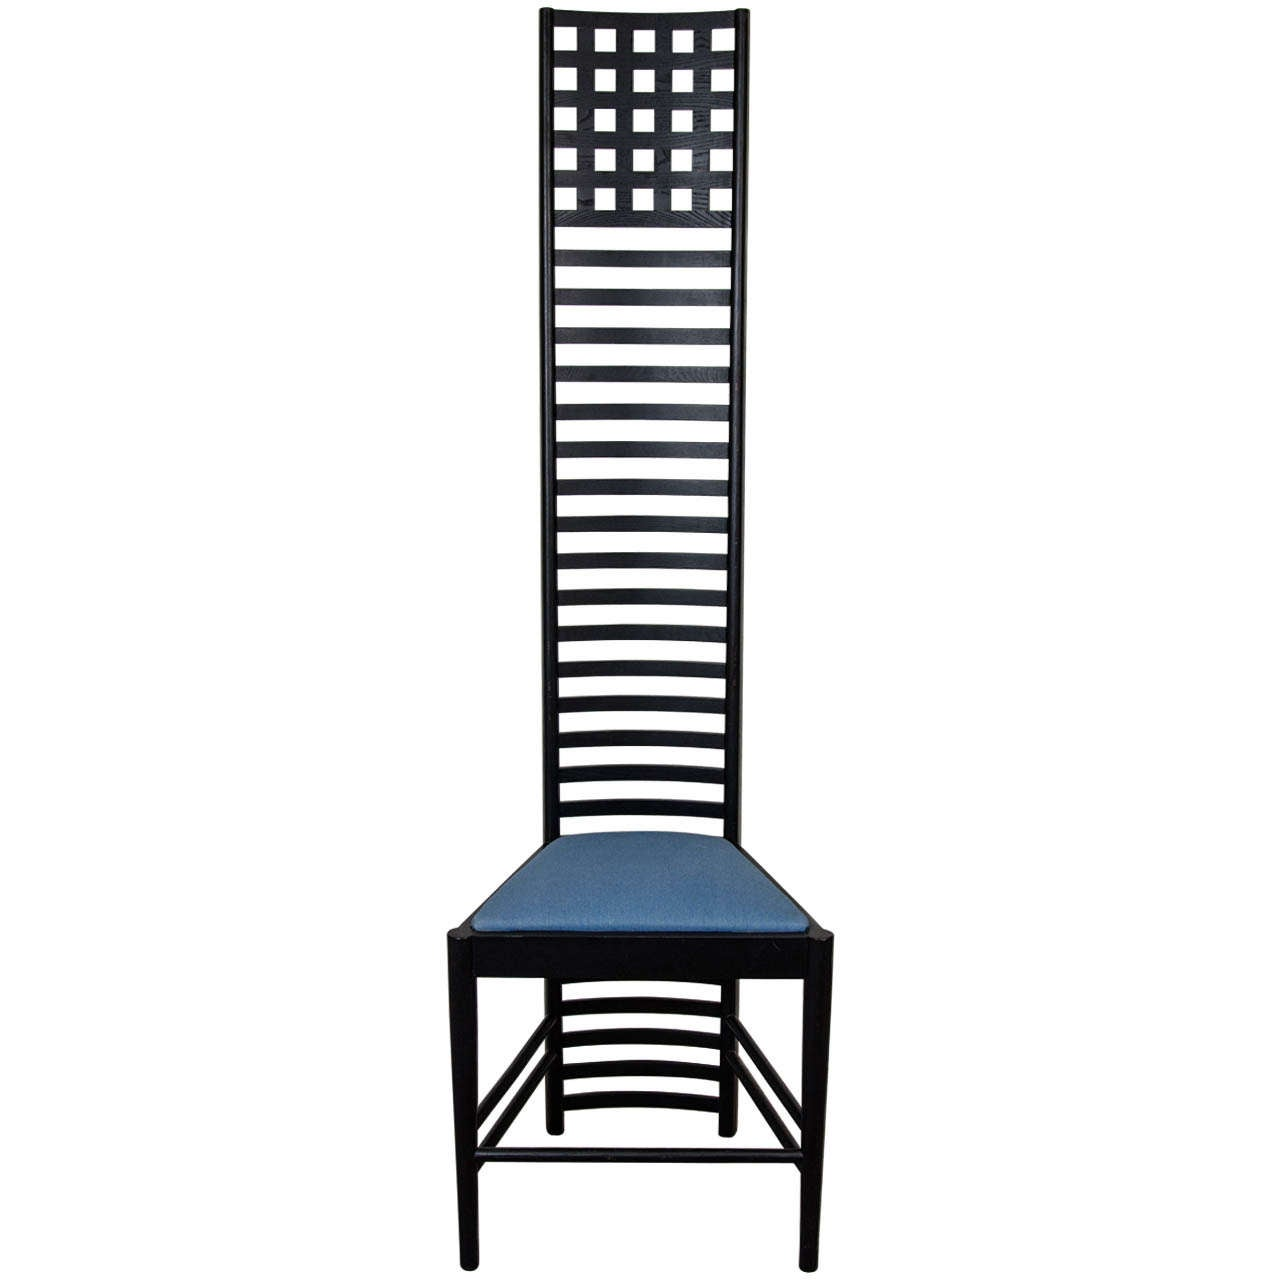 A Charles Rennie Mackintosh Hill House High Back Chair by  : X from www.1stdibs.com size 1280 x 1280 jpeg 54kB